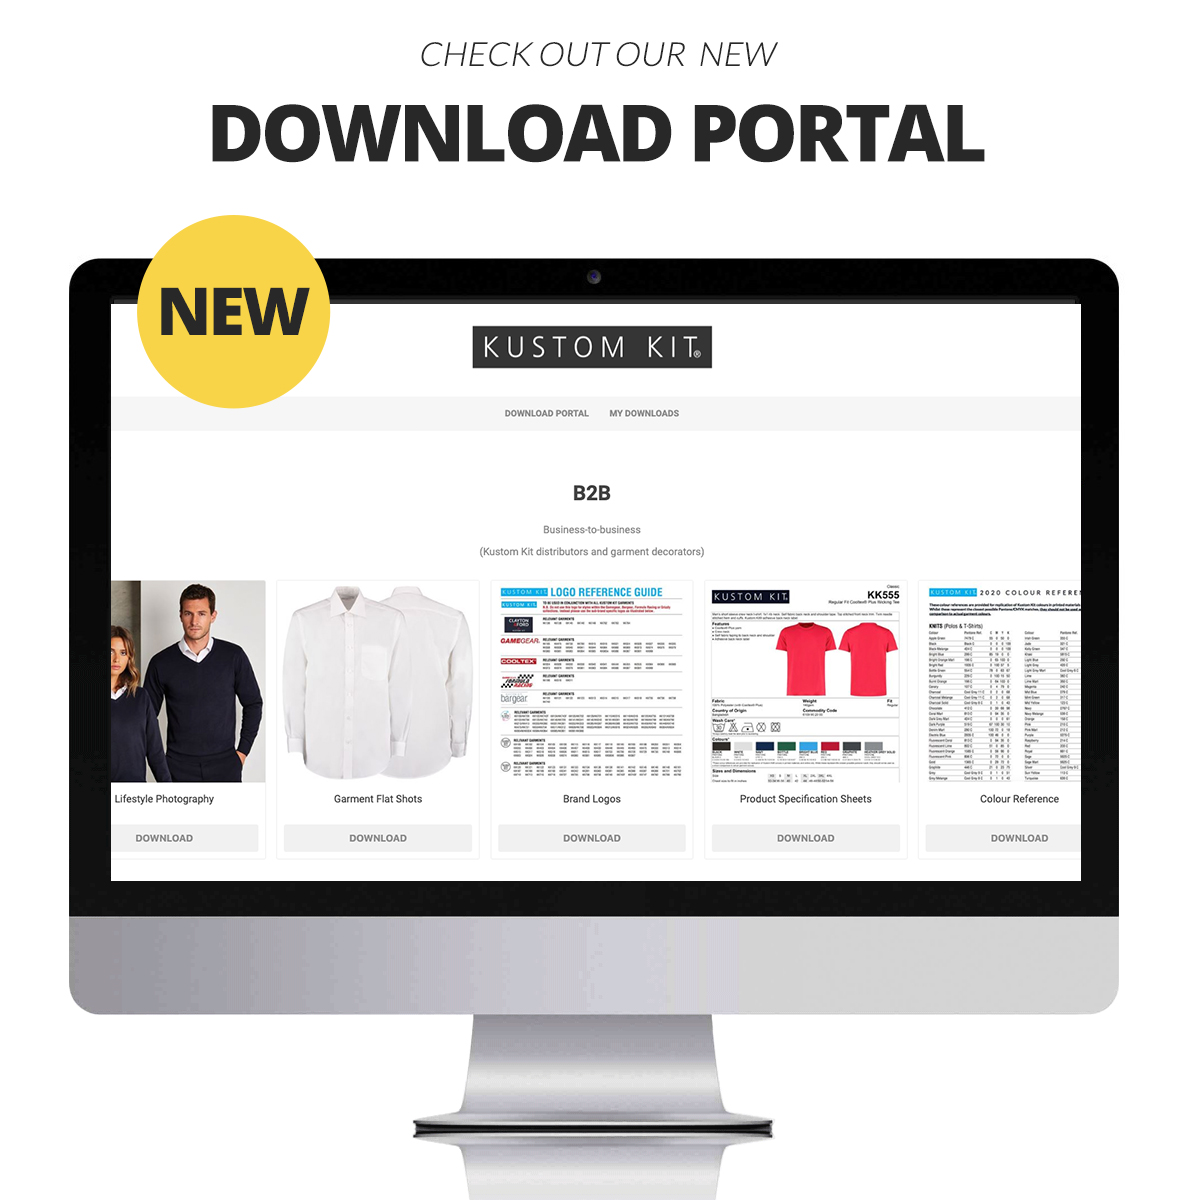 Check Out Our New Download Portal